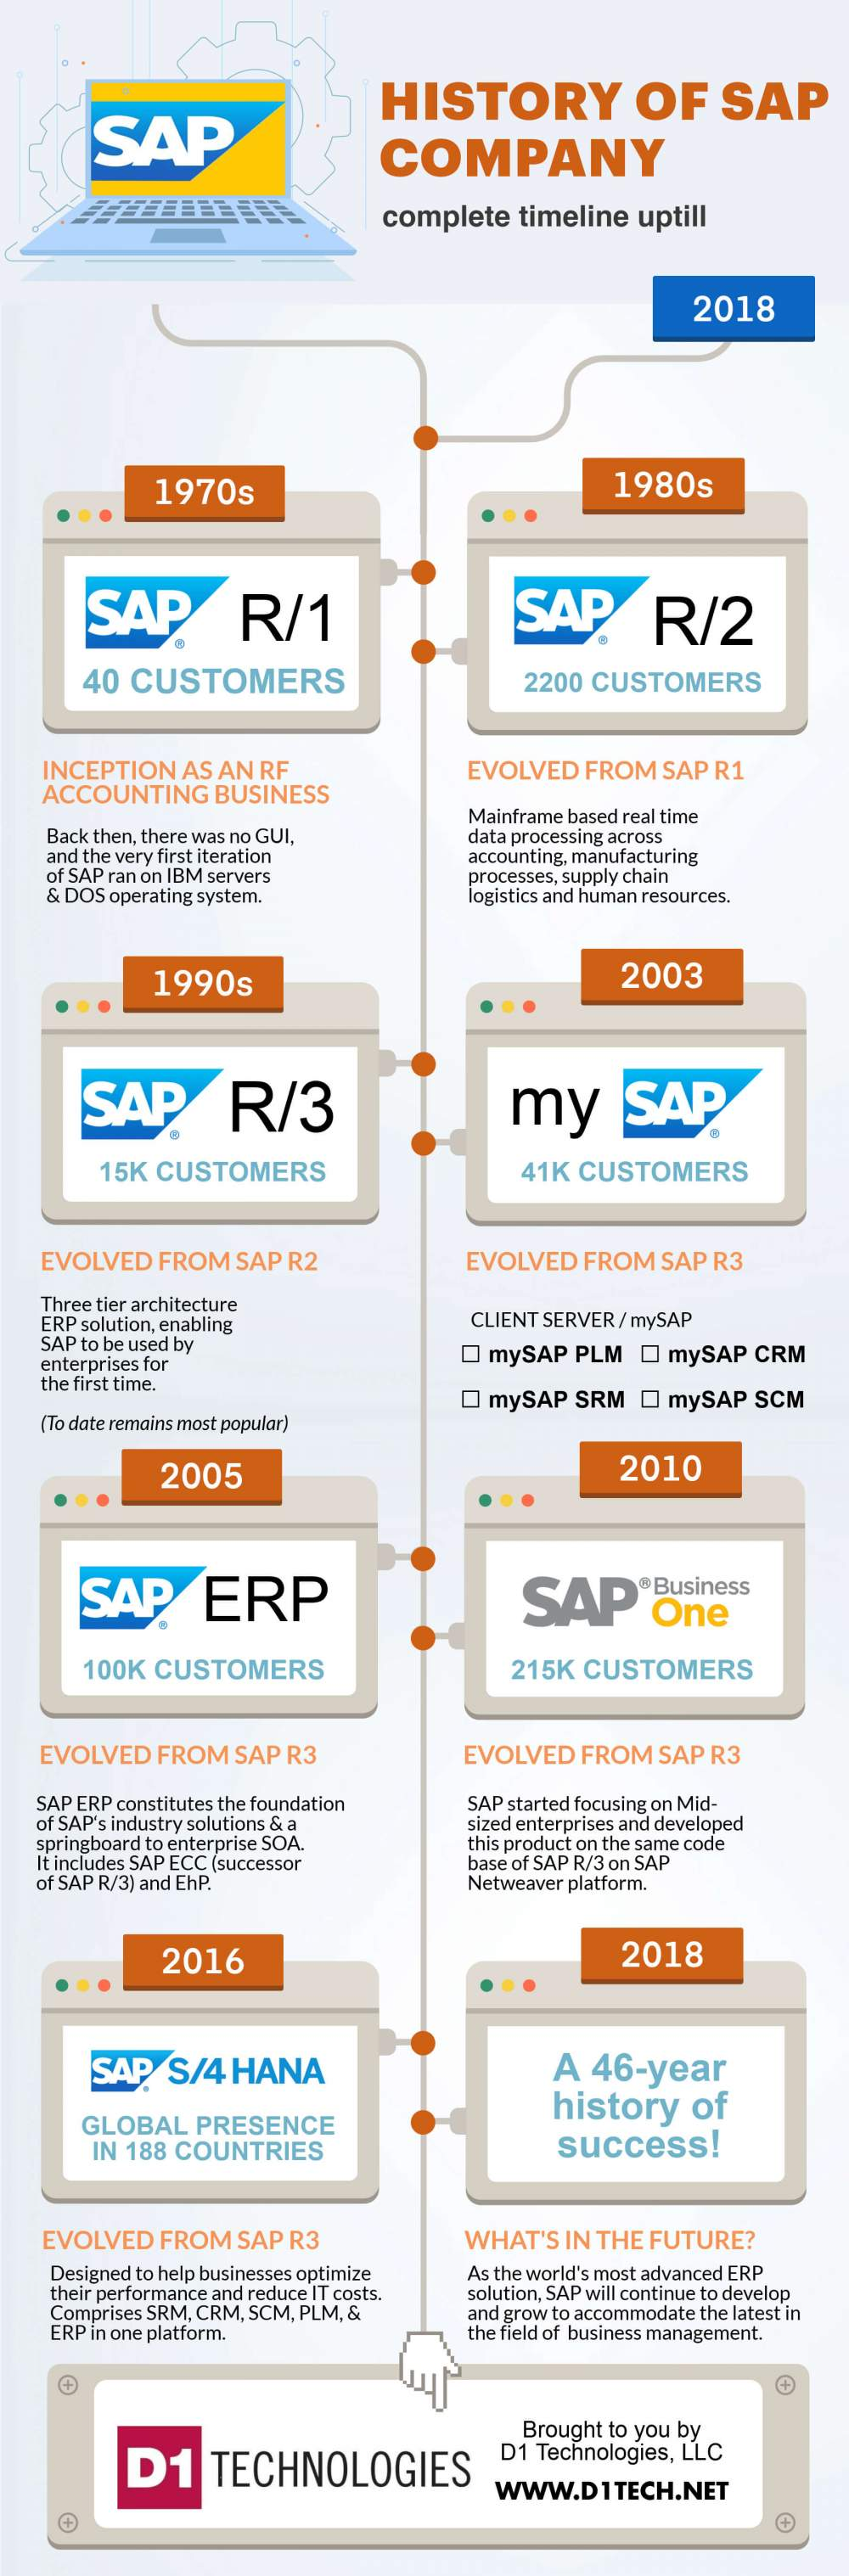 History of SAP Company 2018